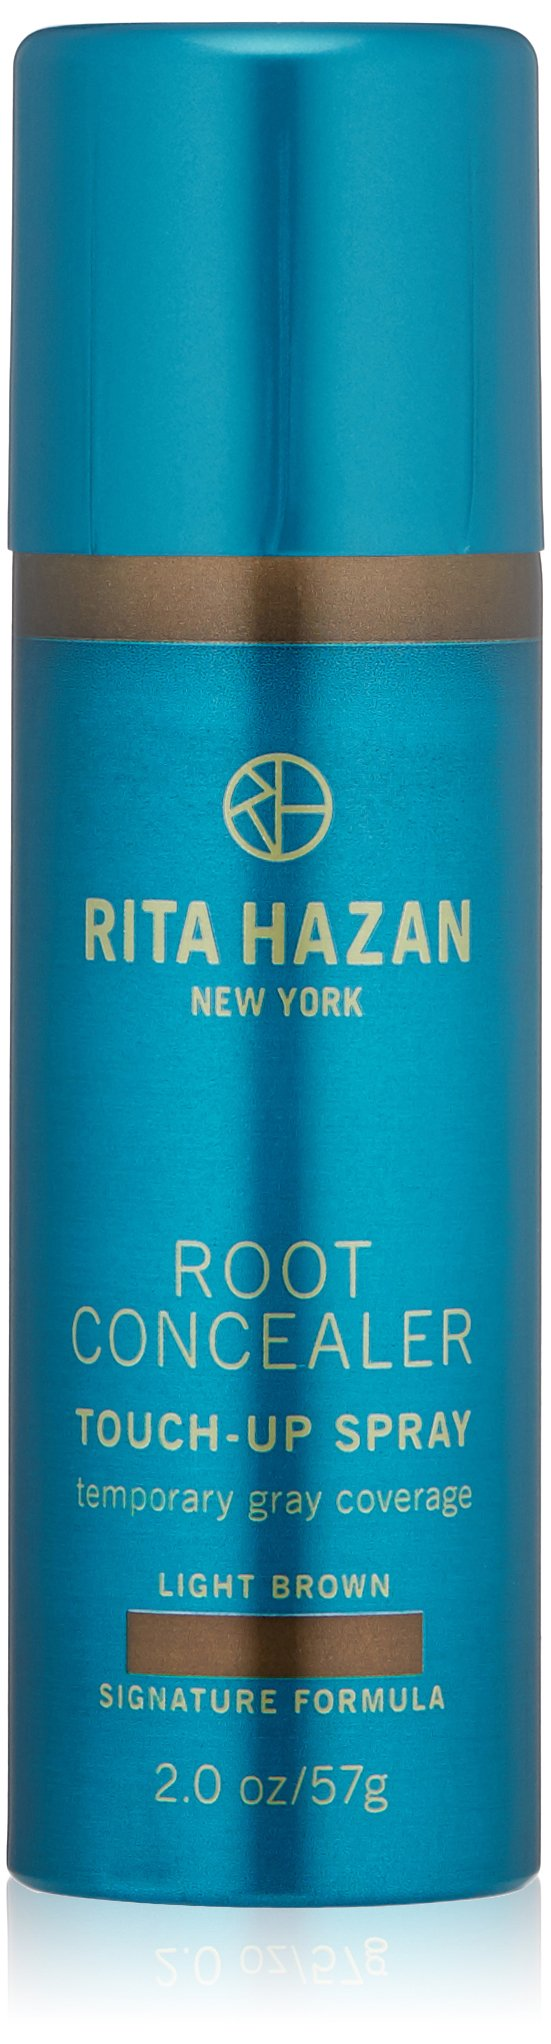 Root Concealer-Rita Hazan- Touch Up Spray-Light Brown Cover Up Gray 2oz